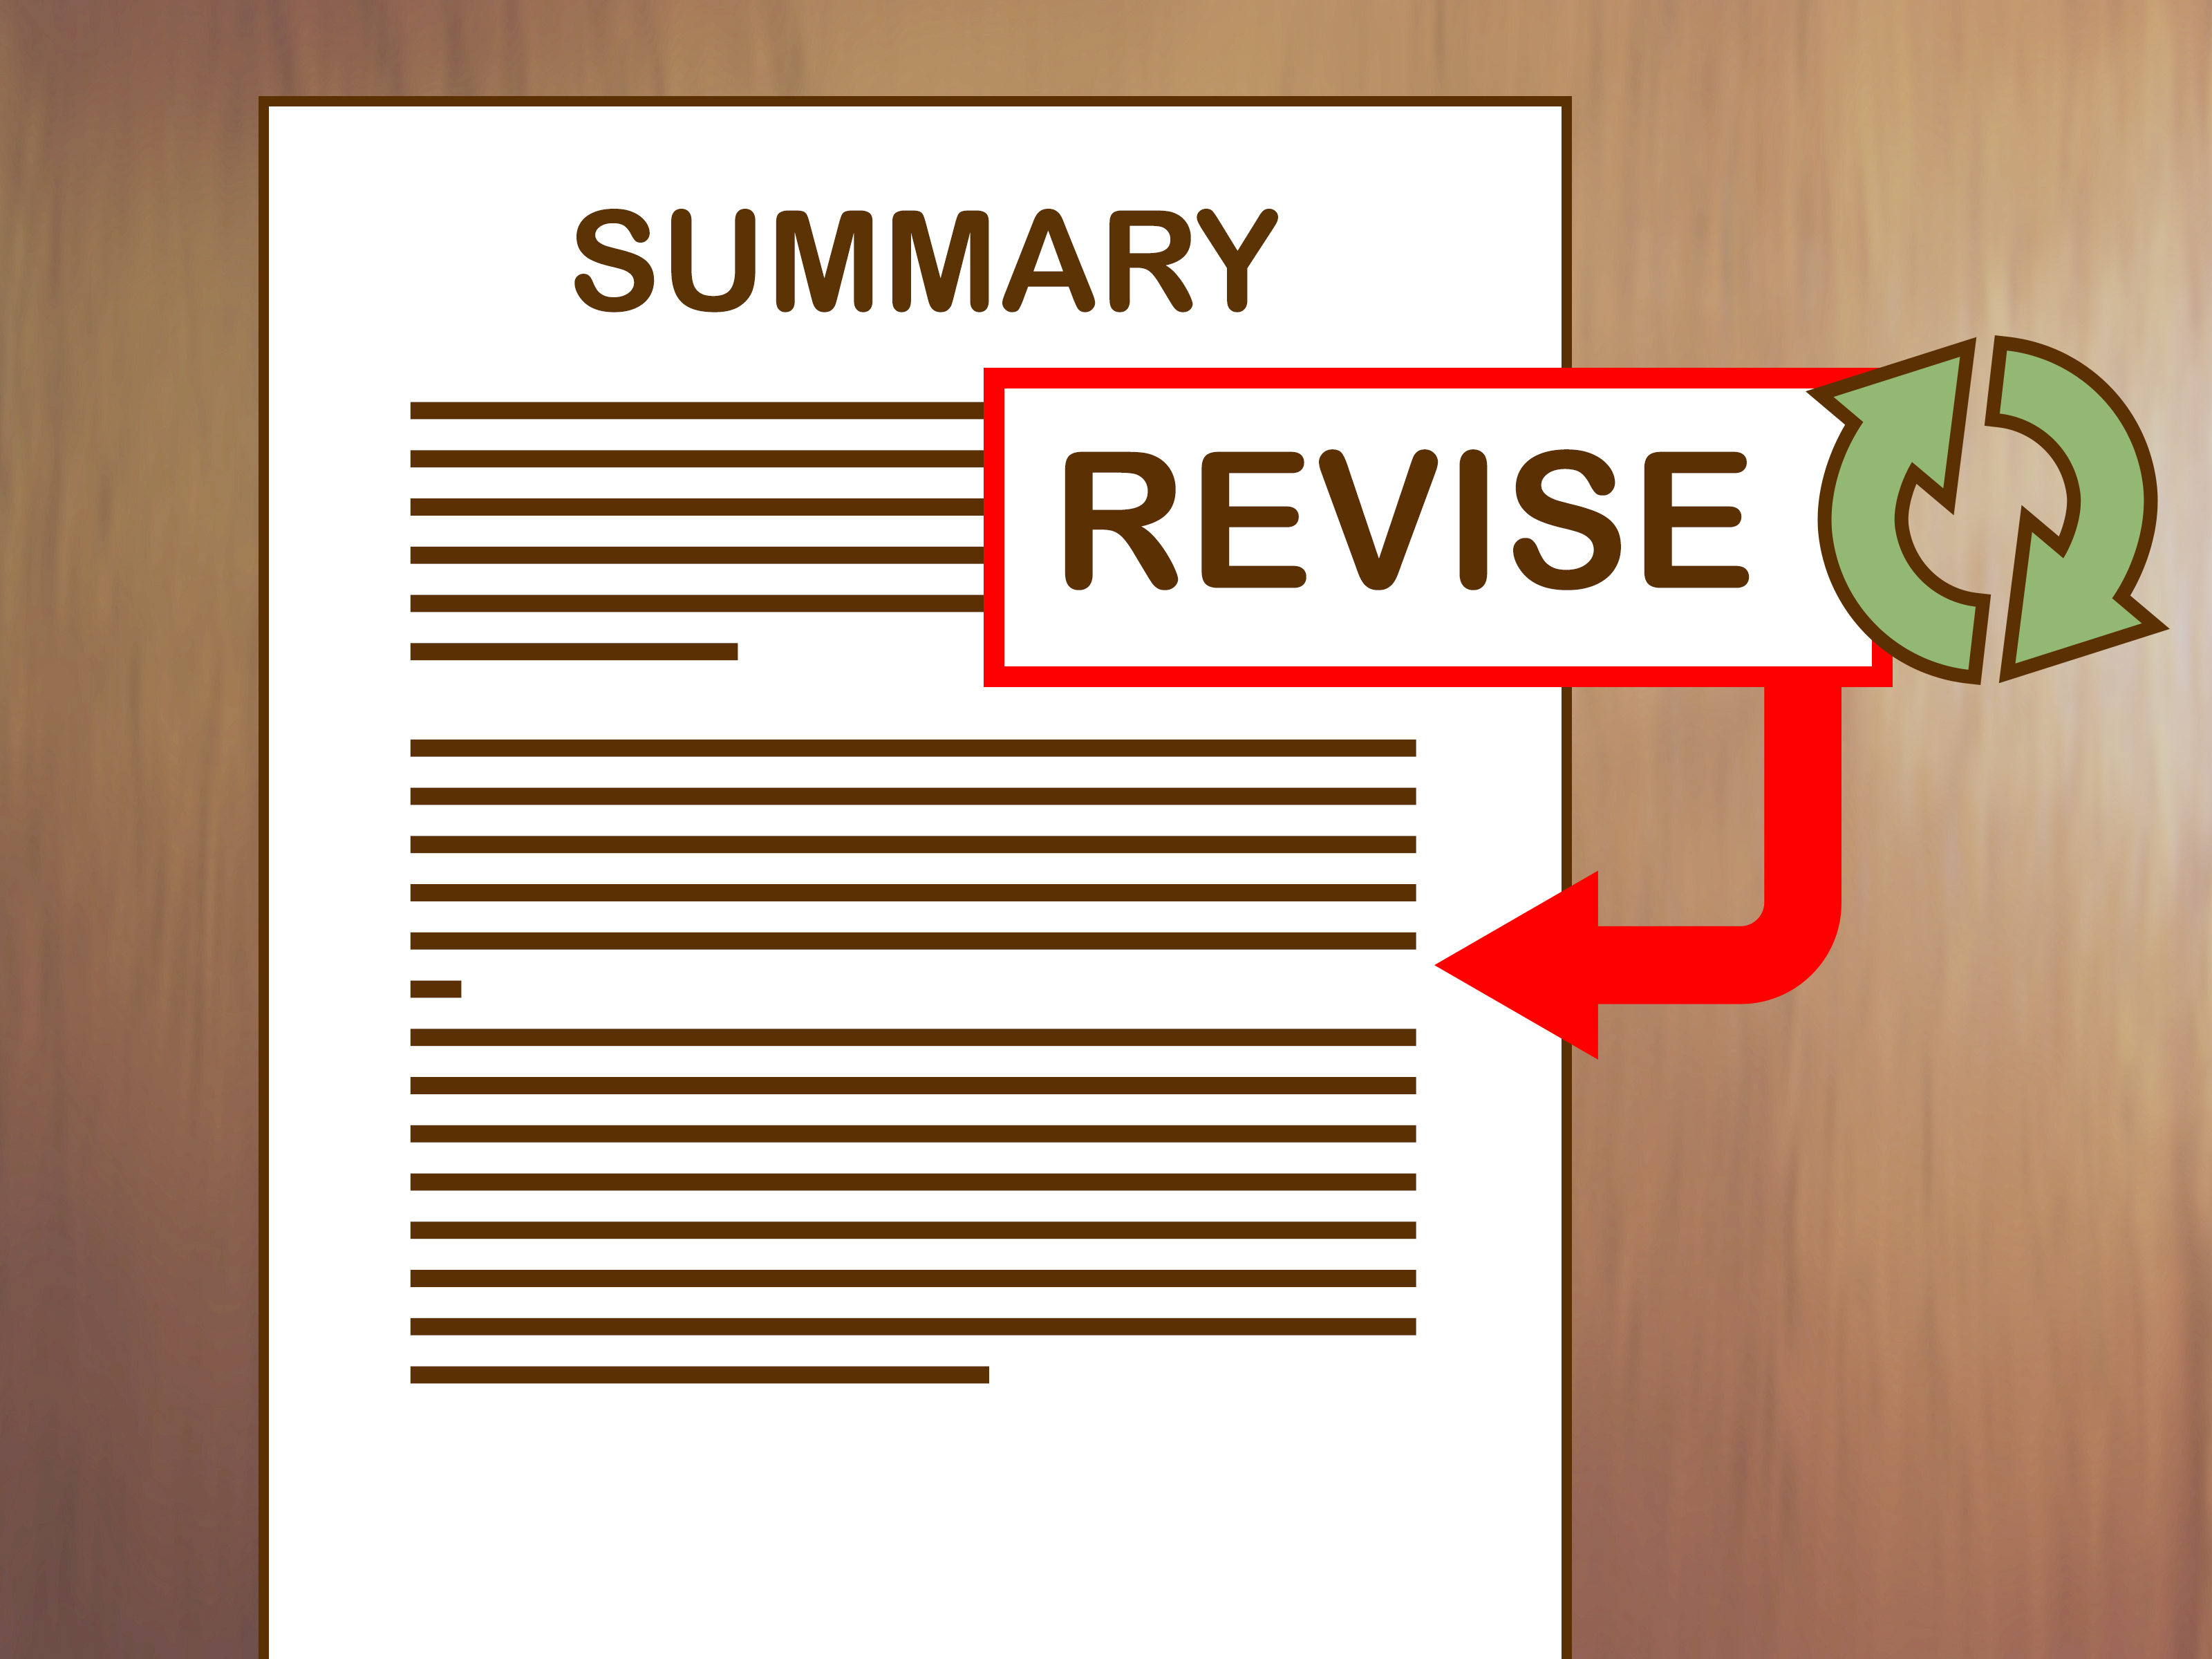 How To Summarize A Journal Article With Examples